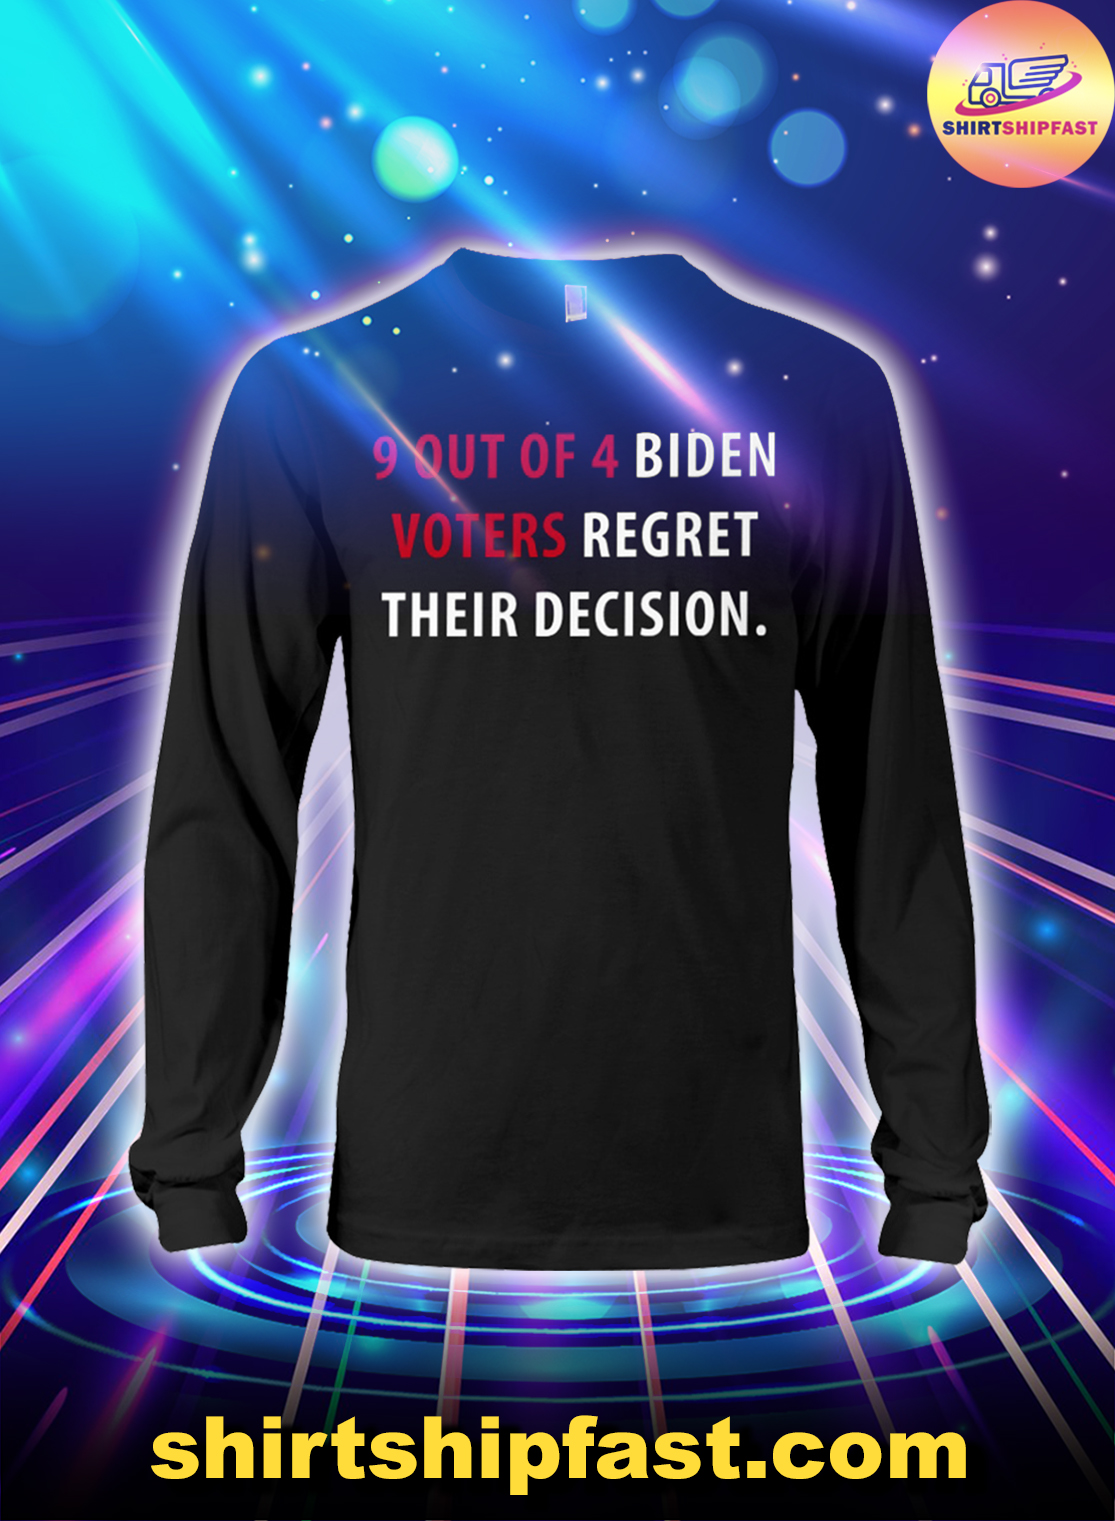 9 out of 4 Biden voters regret their decision long sleeve tee